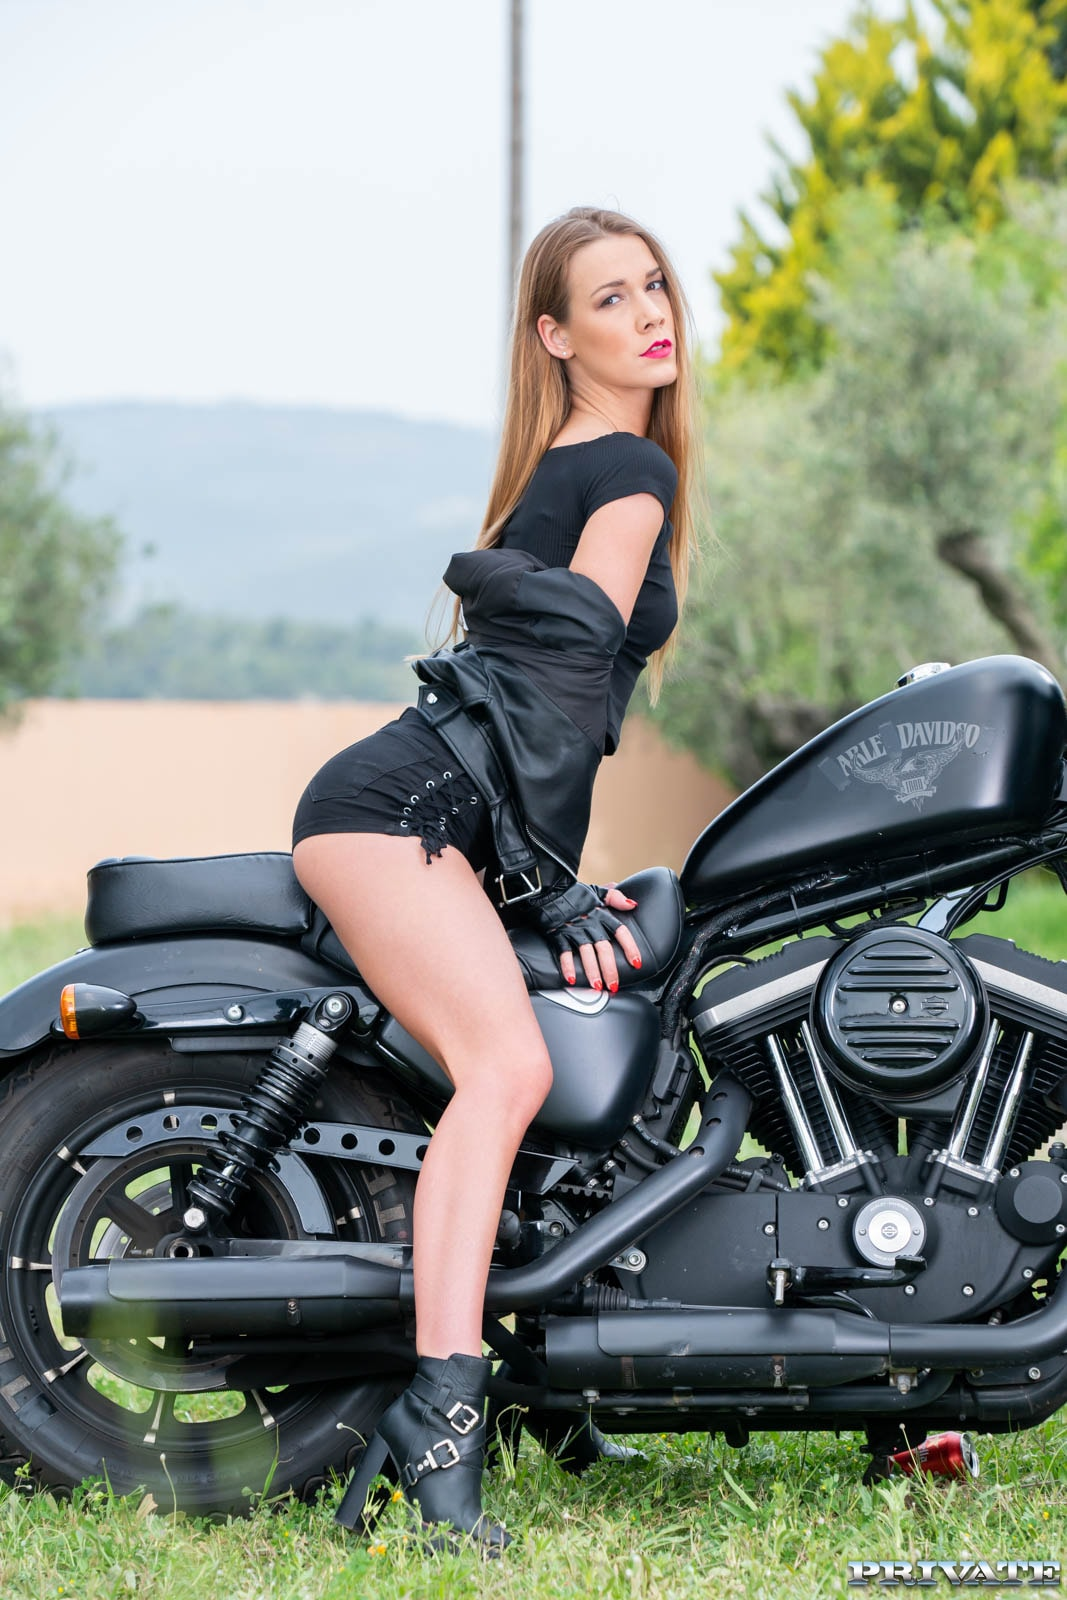 18+ Alexis Crystal Fucks On Motorbike (2021) New Adult 720p Download